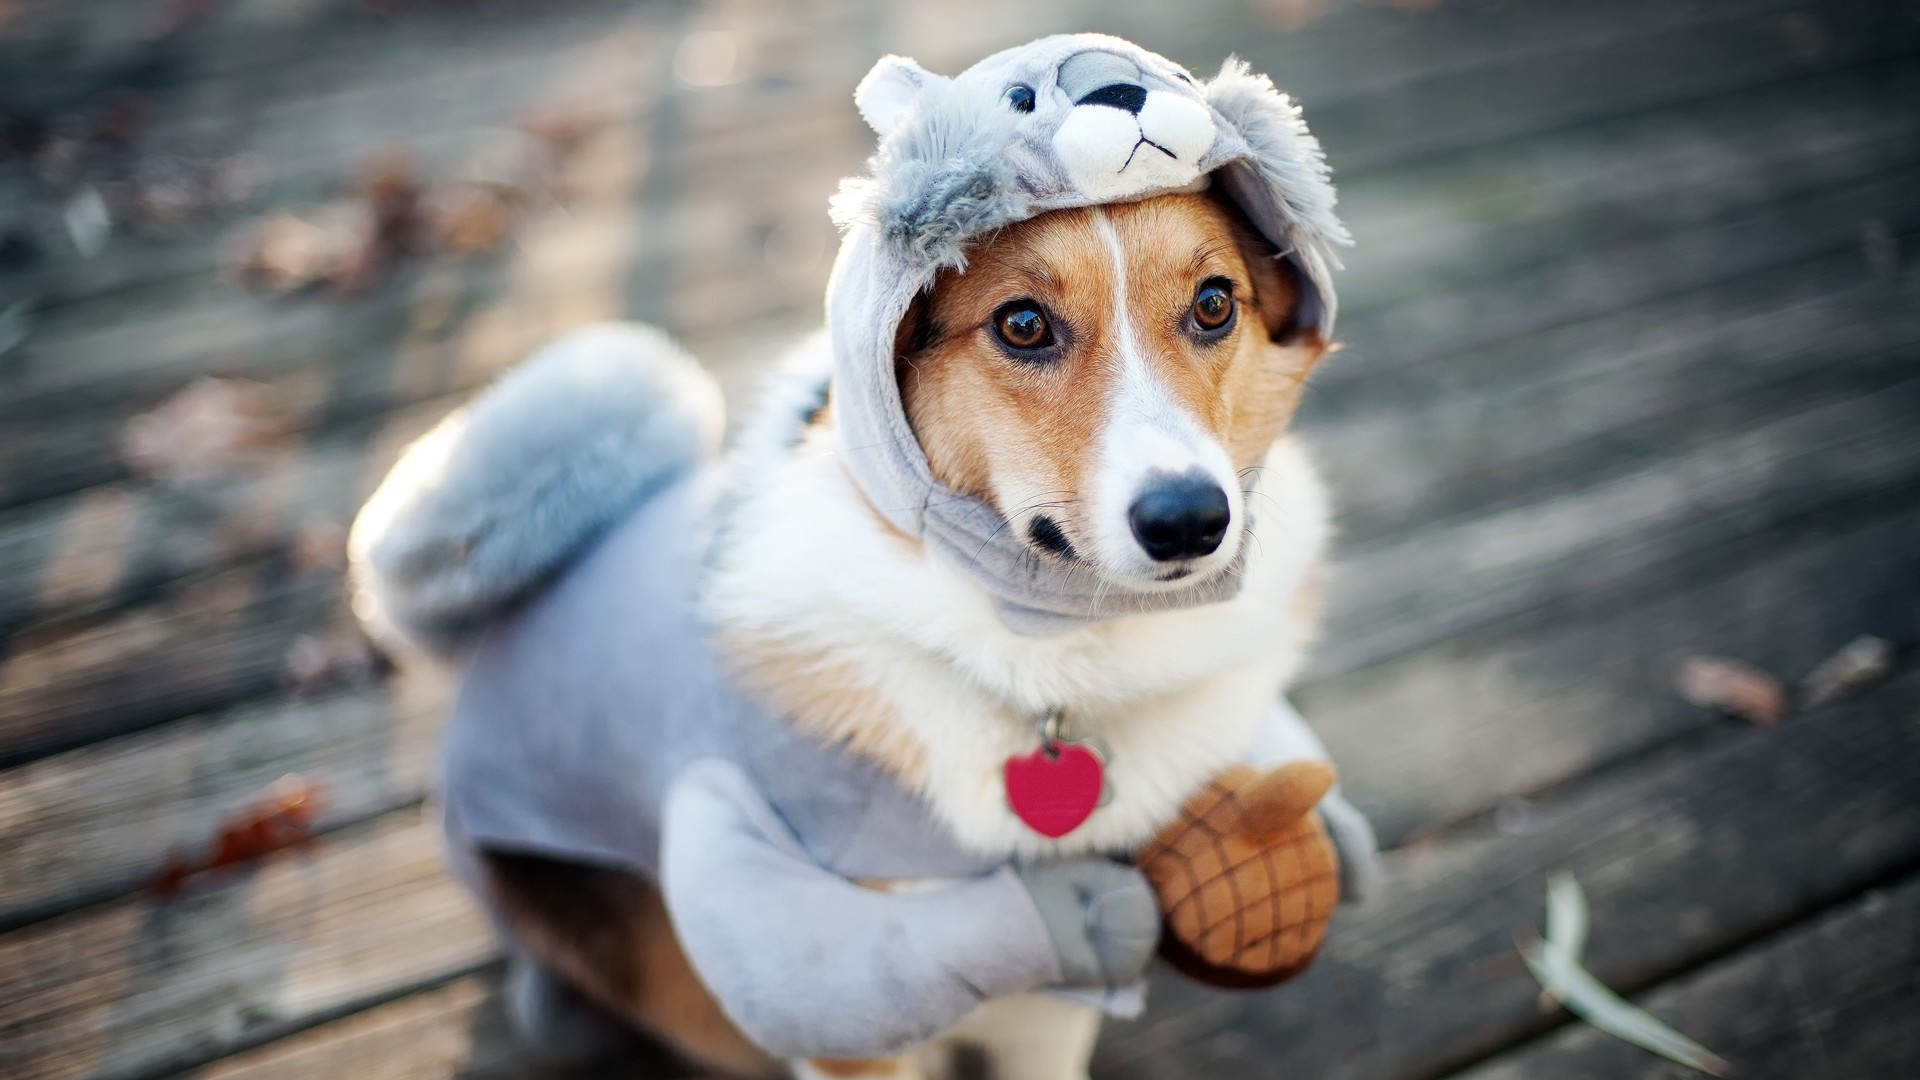 Puppy dressed in a squirrel suit